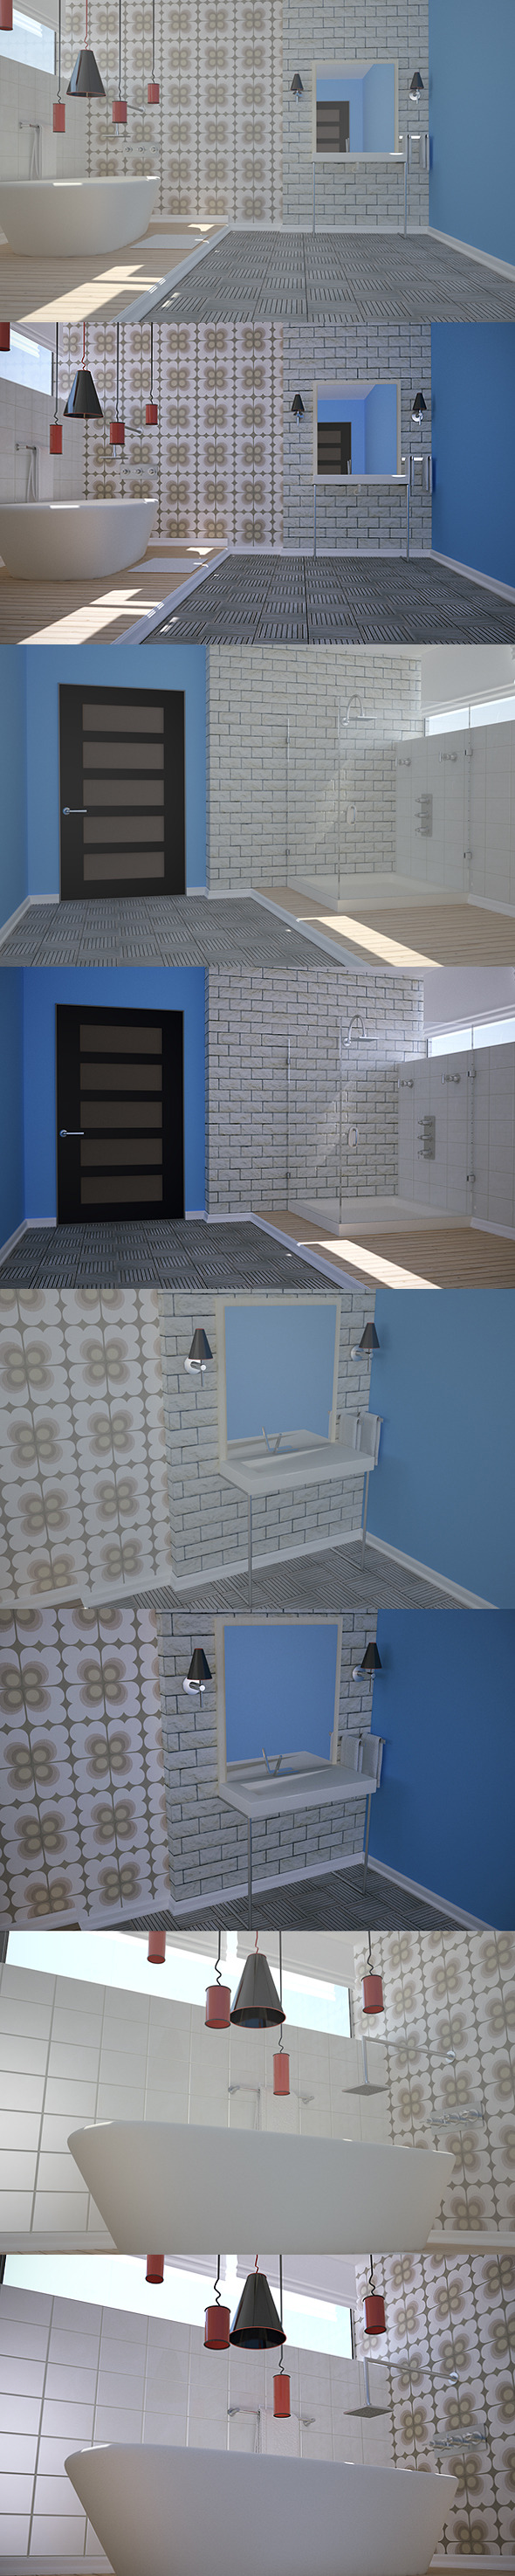 Bathroom Design (VrayC4D) - 3DOcean Item for Sale